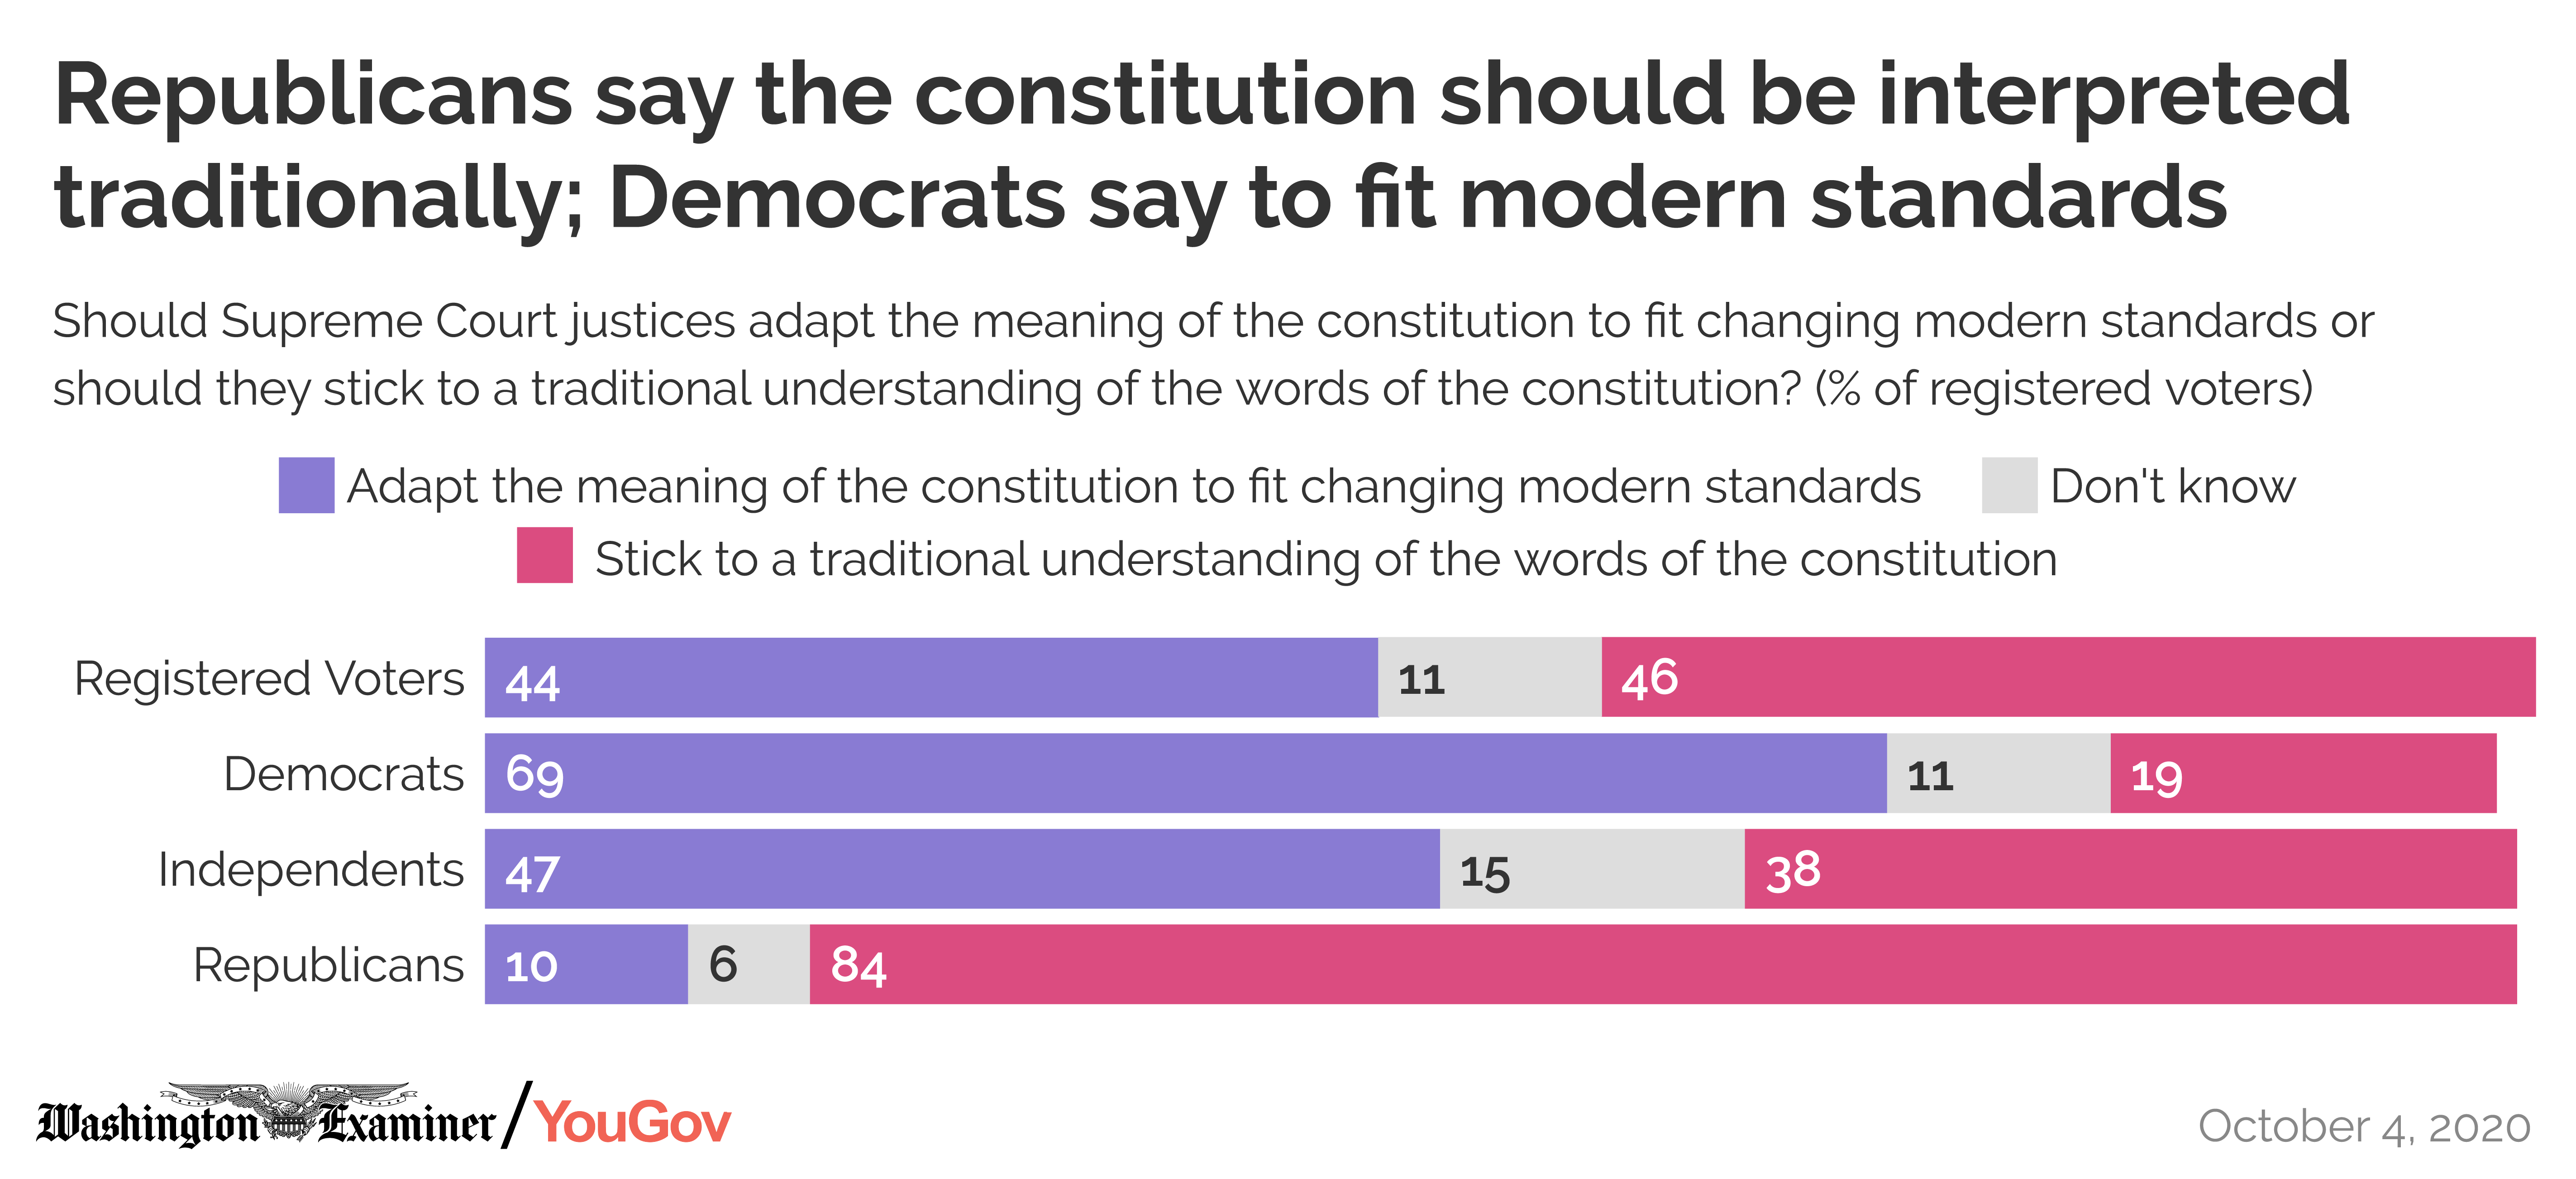 Republicans say the constitution should be interpreted traditionally, Democrats say to fit modern standards